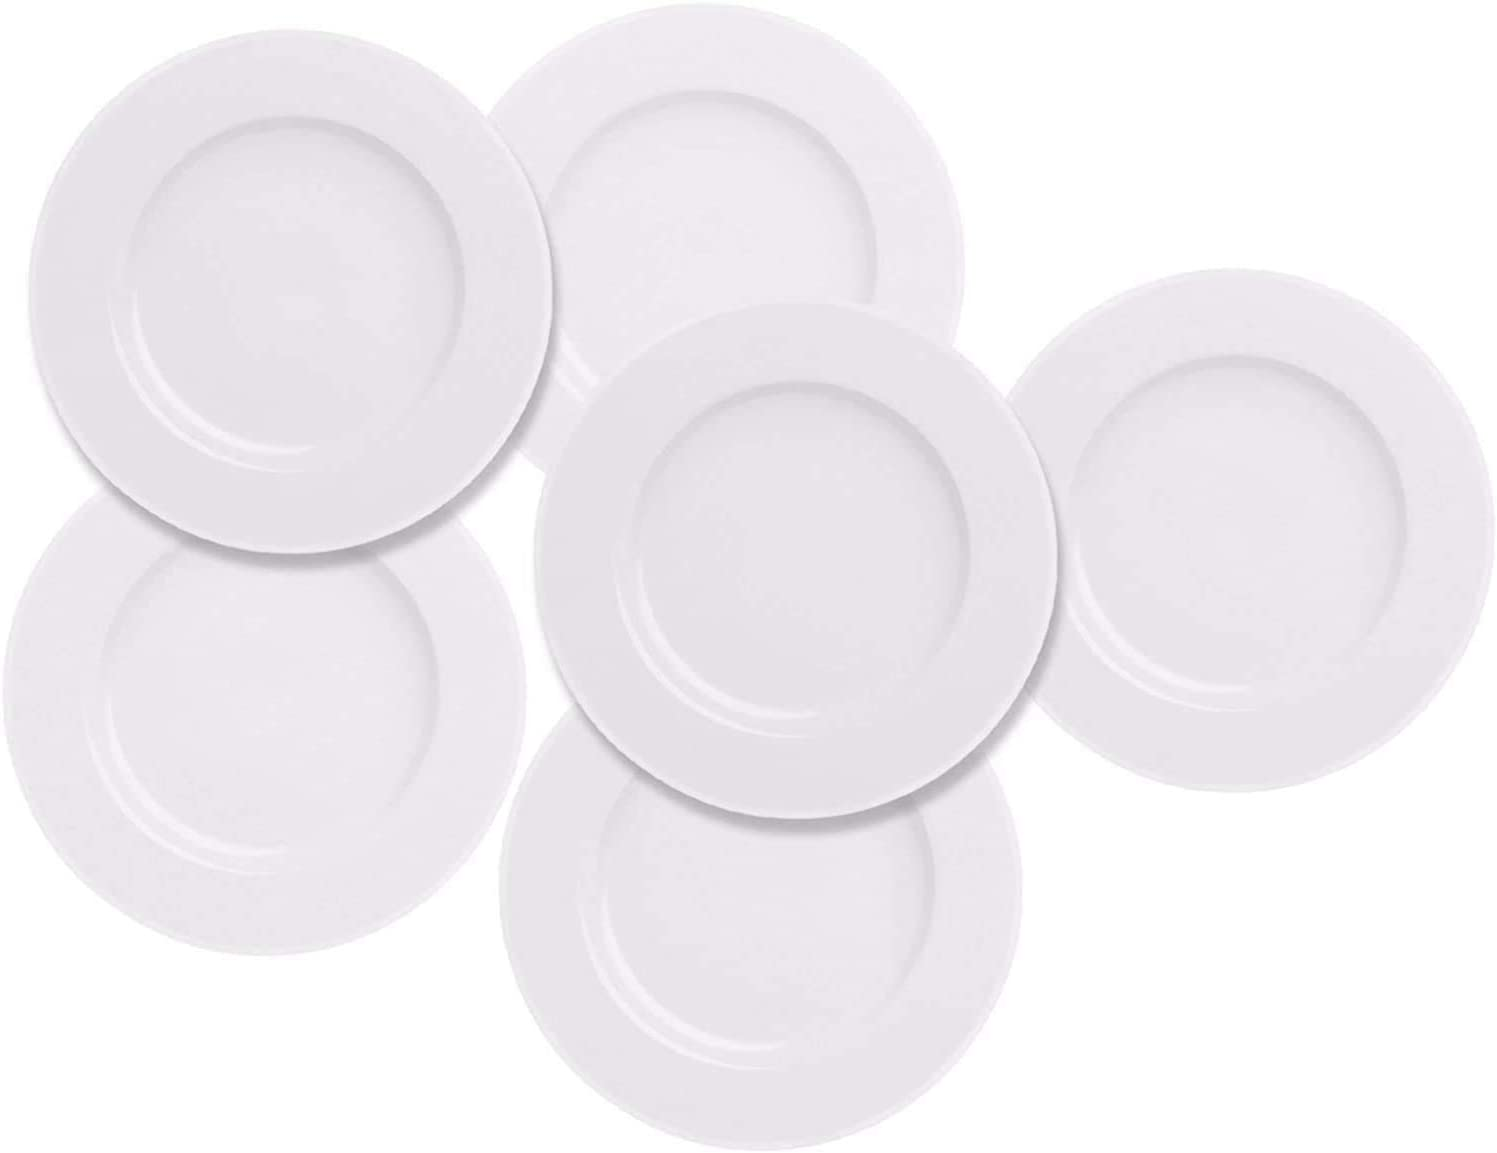 Salad Dessert Plate 7.5inch White Porcelain Dinner Set of 6 with Round Flat Design